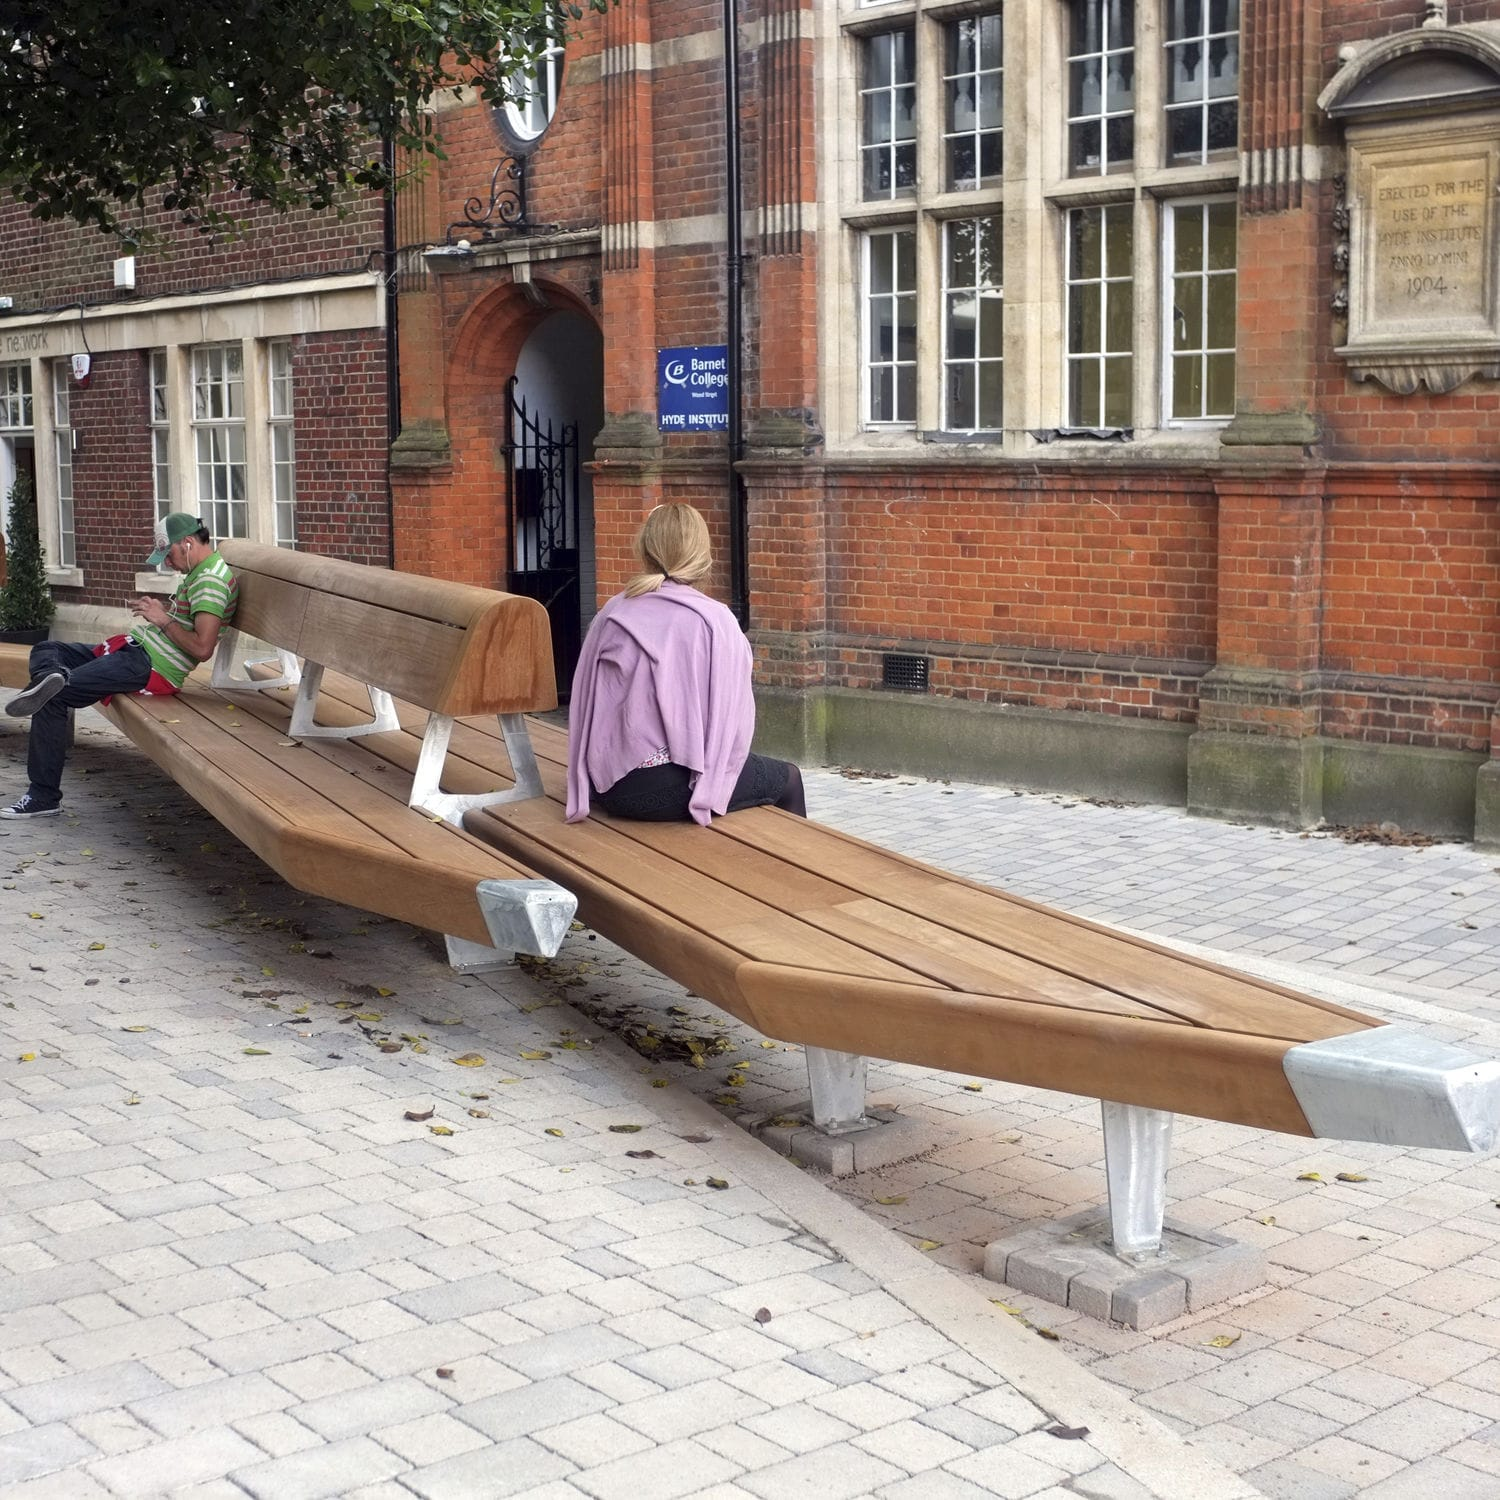 Public Bench / Contemporary / Wooden / Galvanized Steel   CHIPPING BARNET  CHURCH GARDENS, LONDON